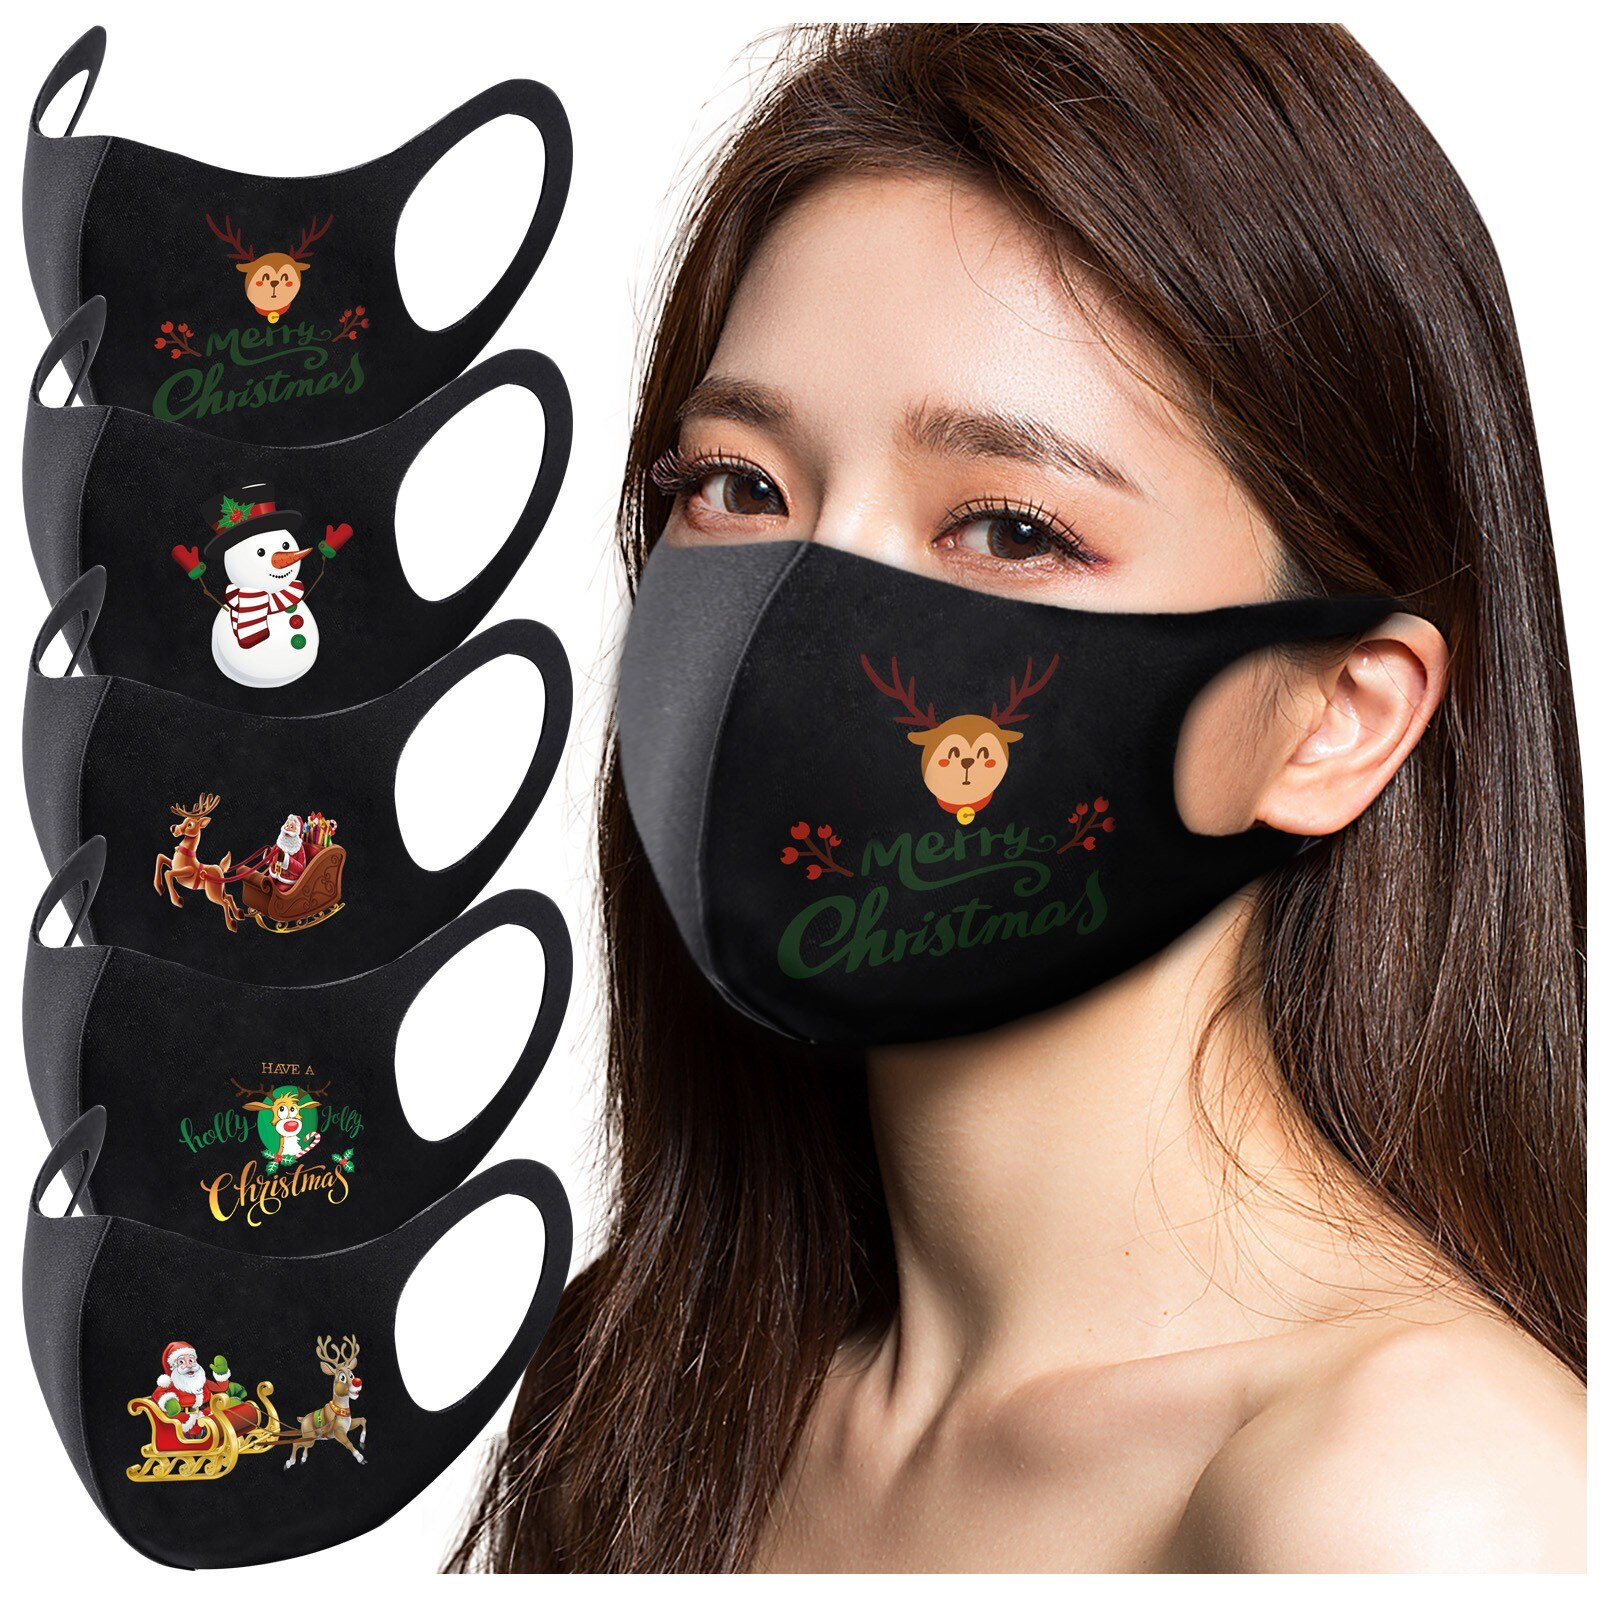 5pc Adult Christmas Face Mask Washable Mouth Fabric Facial Mask For Protection Reusable Santa Earloop Mouth Caps Маска mask 9.29